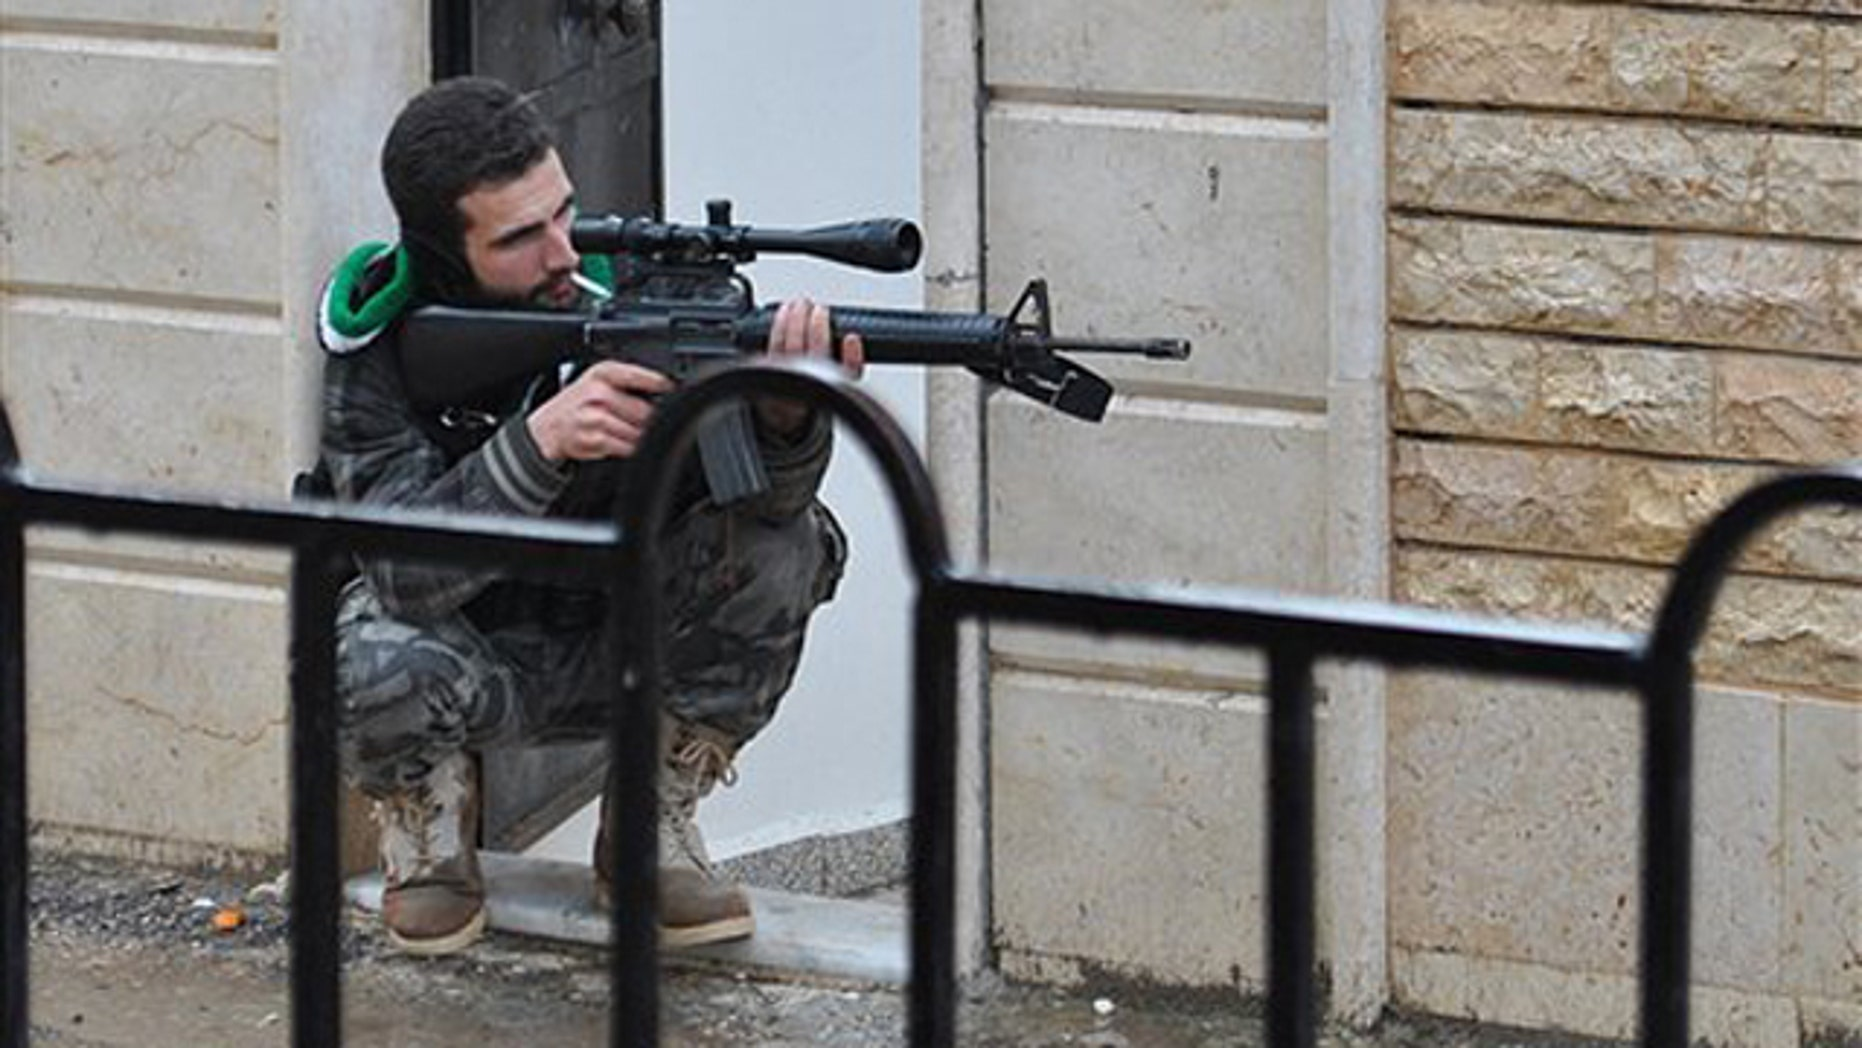 Jan. 31, 2012: A Syrian rebel takes his position as he points his gun during a battle with the Syrian government forces, at Rastan area in Homs province, central Syria.